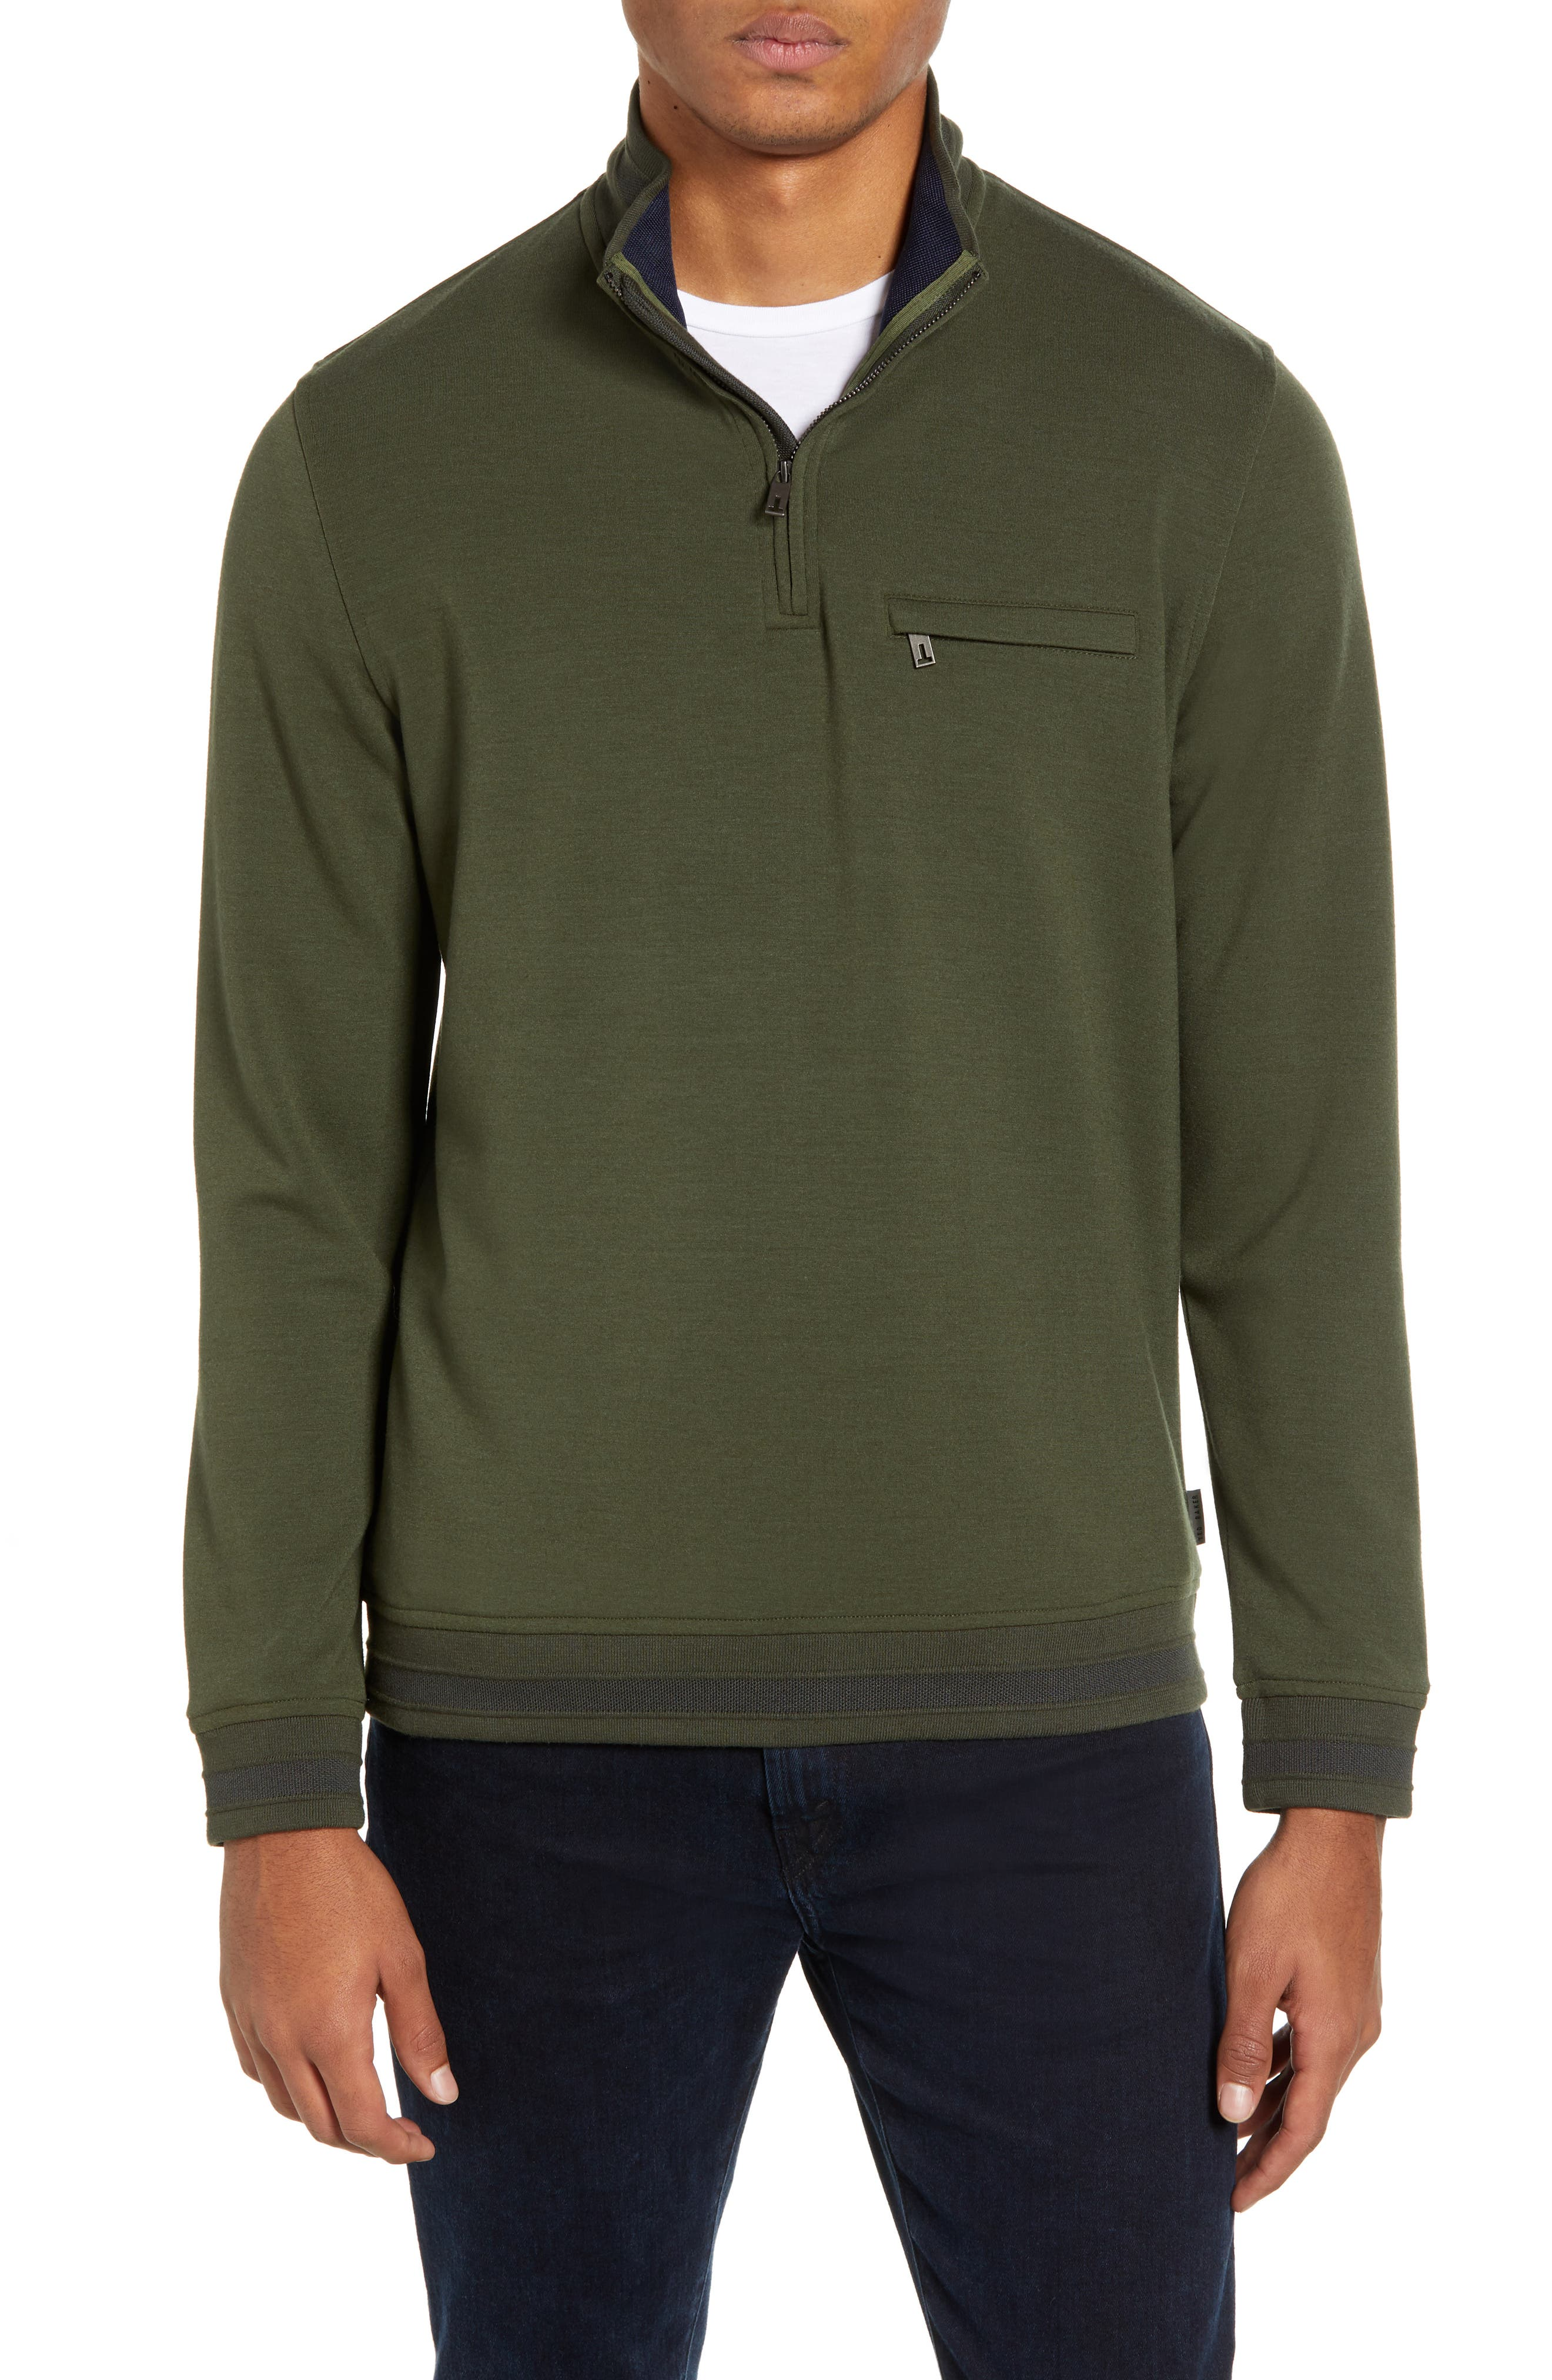 Leevit Quarter Zip Pullover,                             Main thumbnail 1, color,                             KHAKI